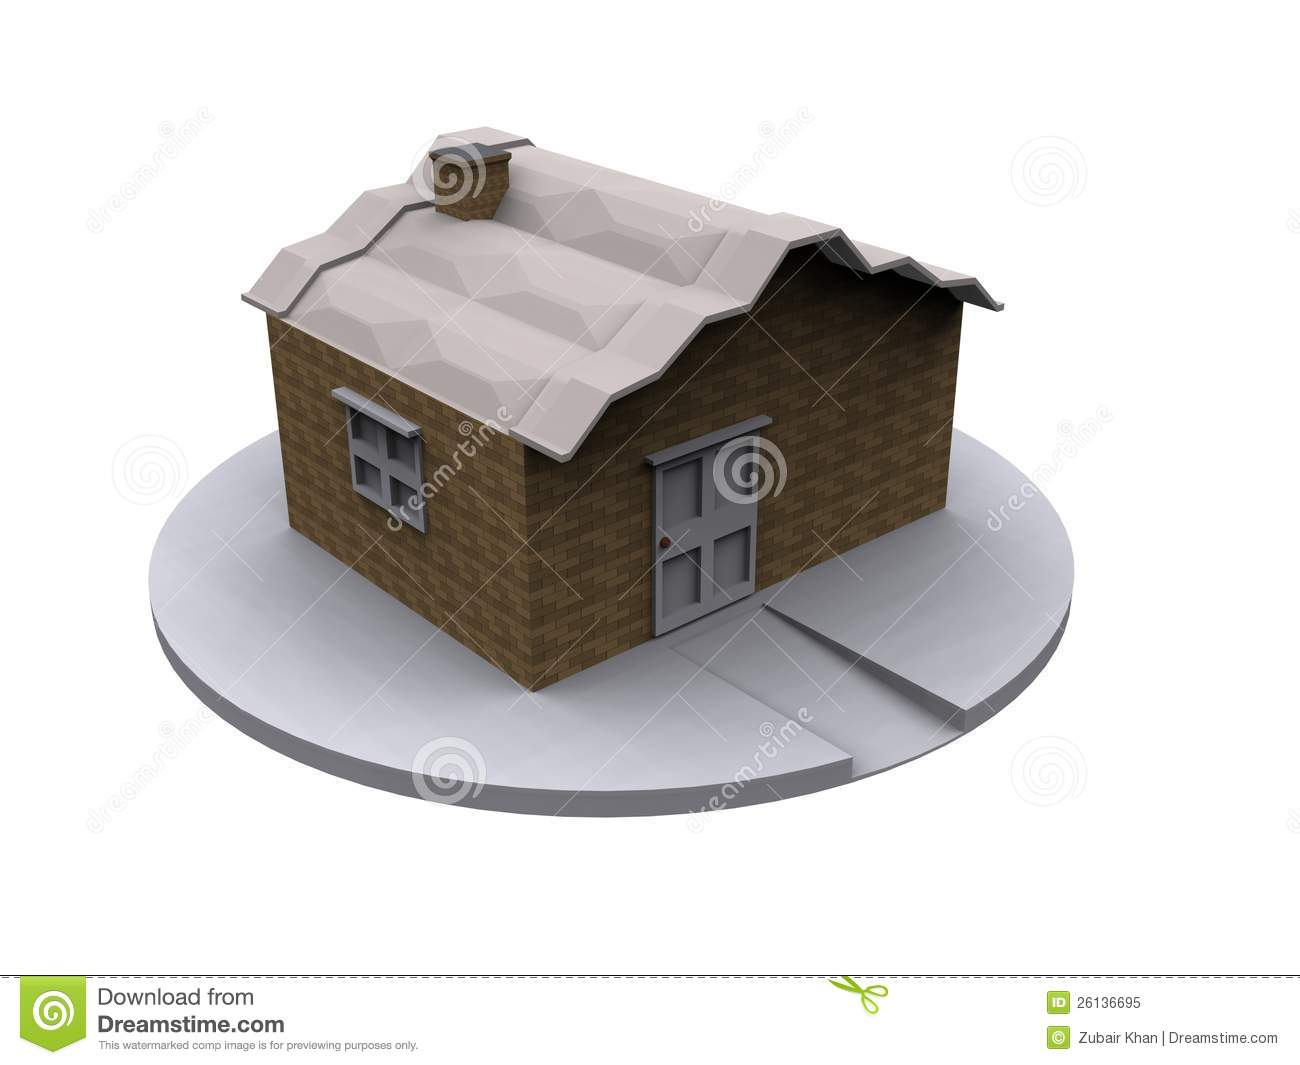 3d home model royalty free stock photo image 26136695 Home 3d model